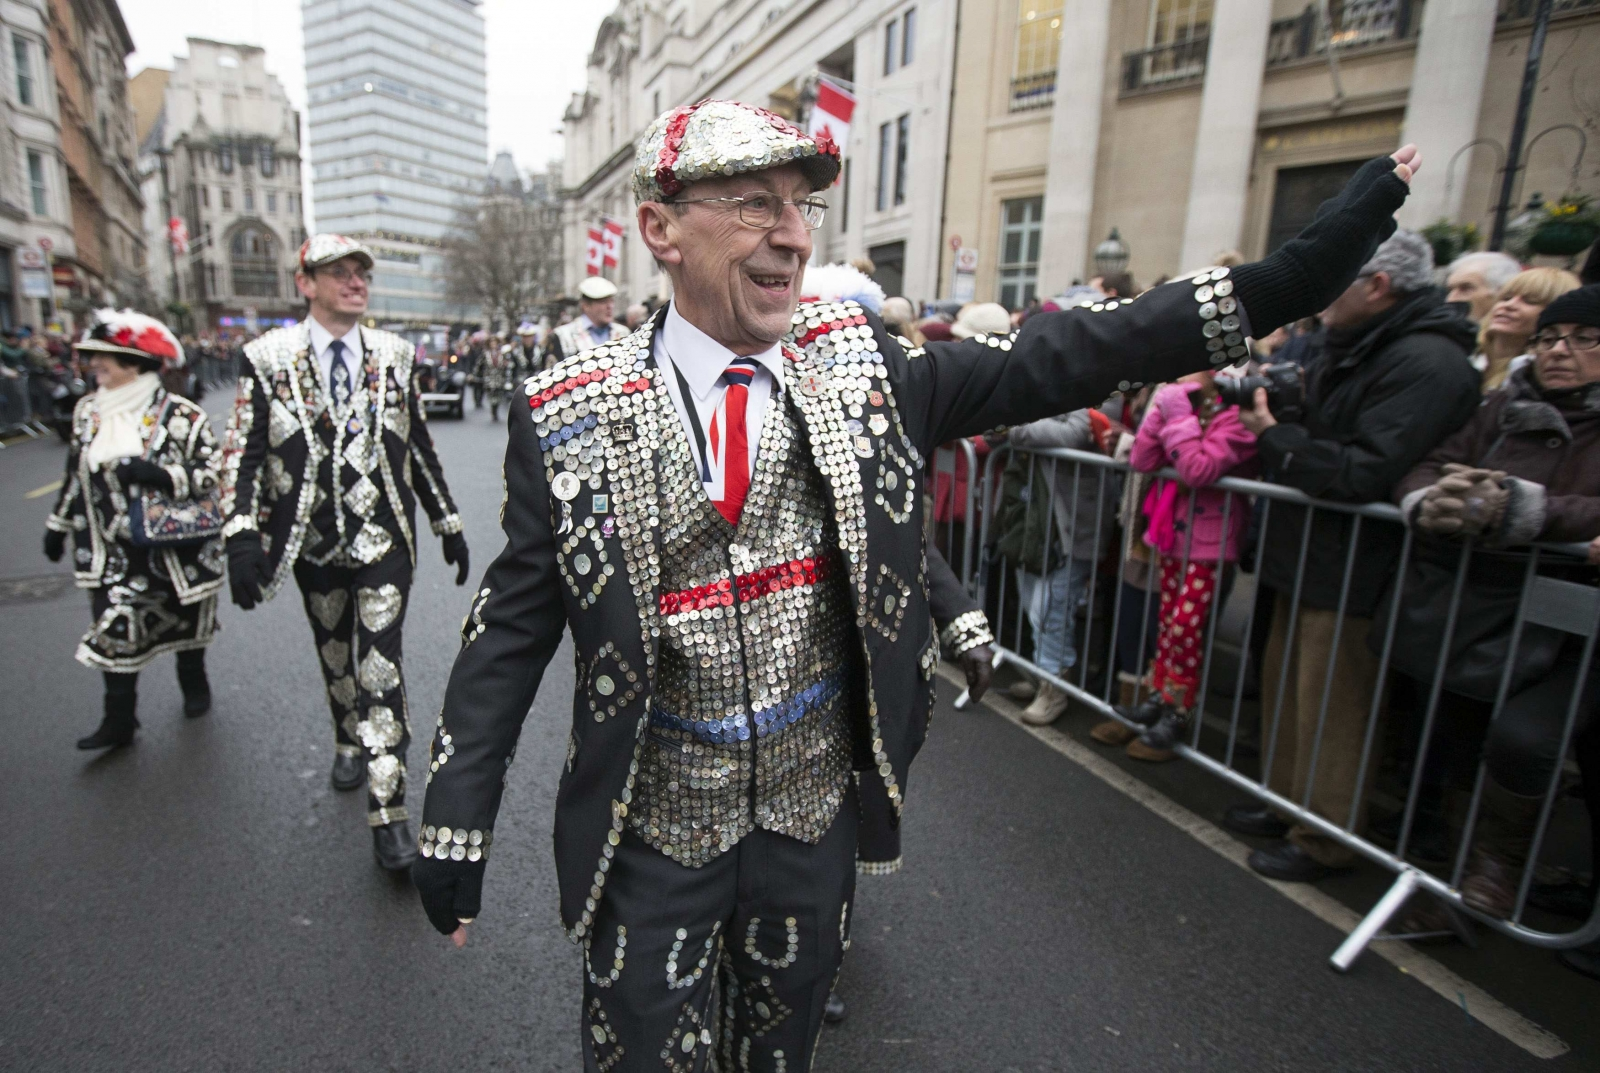 London kicks off 2015 with New Year's Day parade